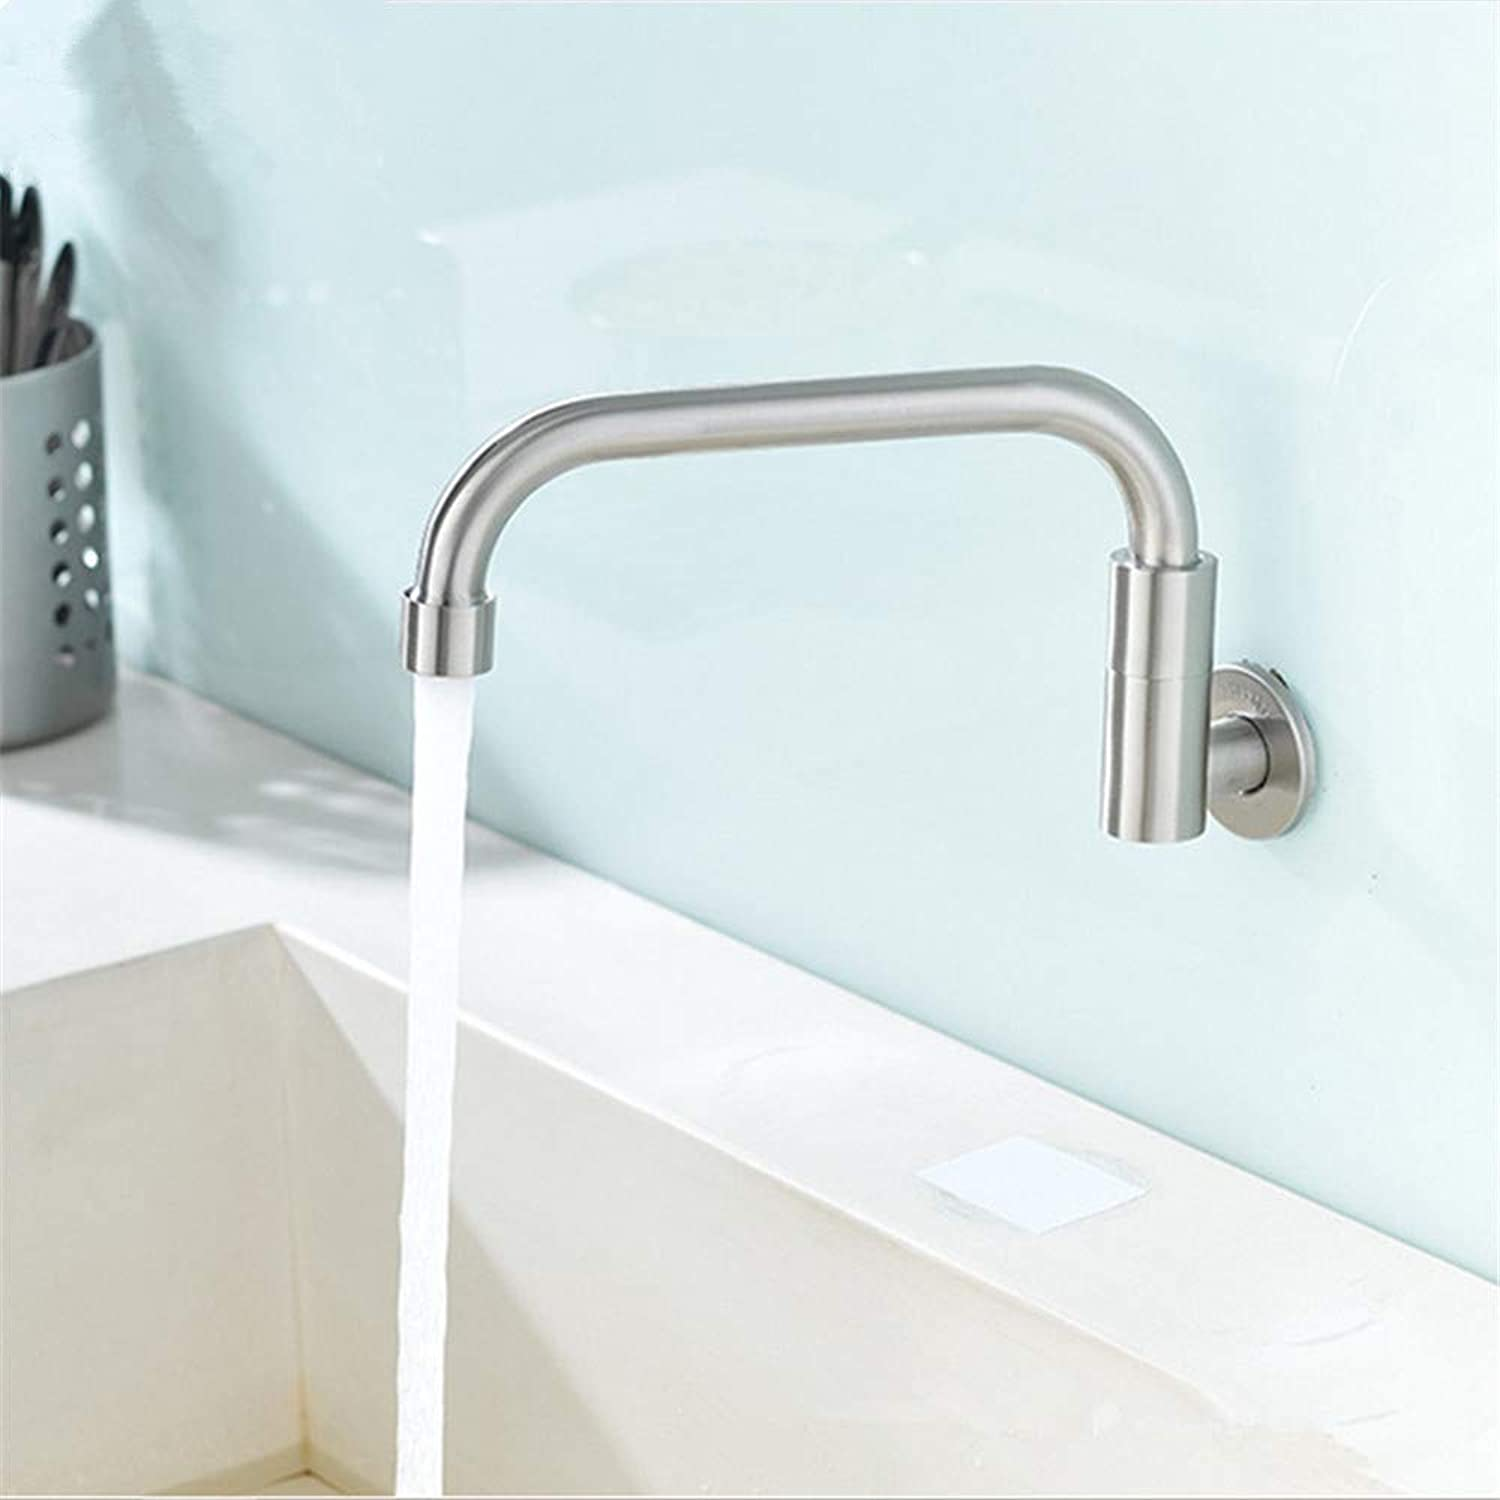 Decorry Stainless Steel Wall Mounted Single Cold Water Kitchen Faucet redatable Tap Move Faucet to Open and Close